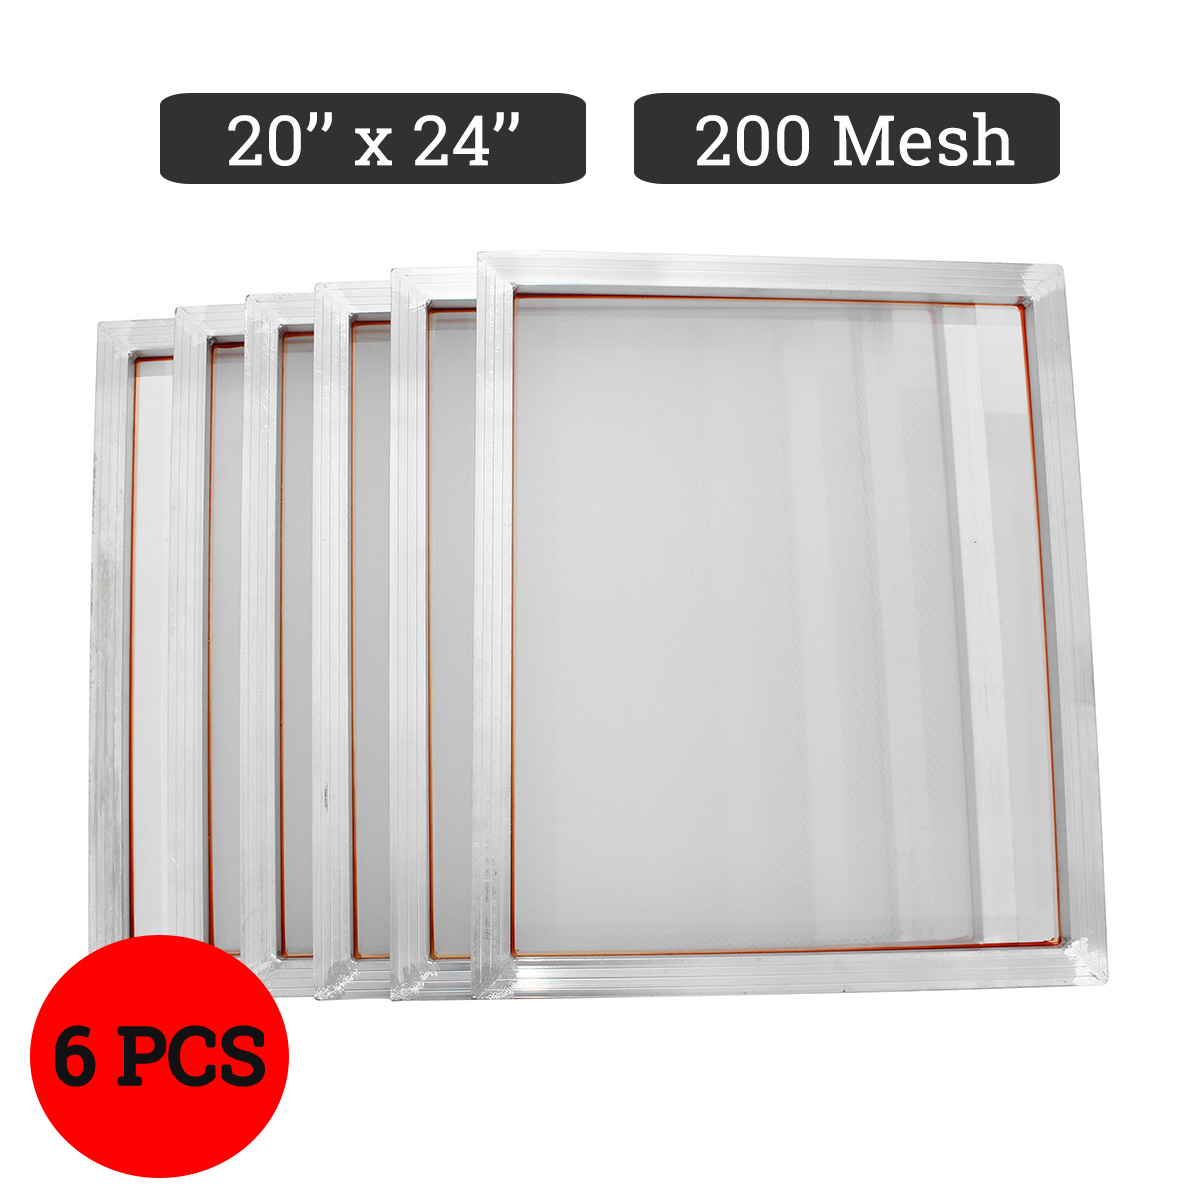 NEW 6pcs/set 200T Mesh Aluminum Silk Screen Printing Press Frame Screens White Out Size 50x60cmNEW 6pcs/set 200T Mesh Aluminum Silk Screen Printing Press Frame Screens White Out Size 50x60cm